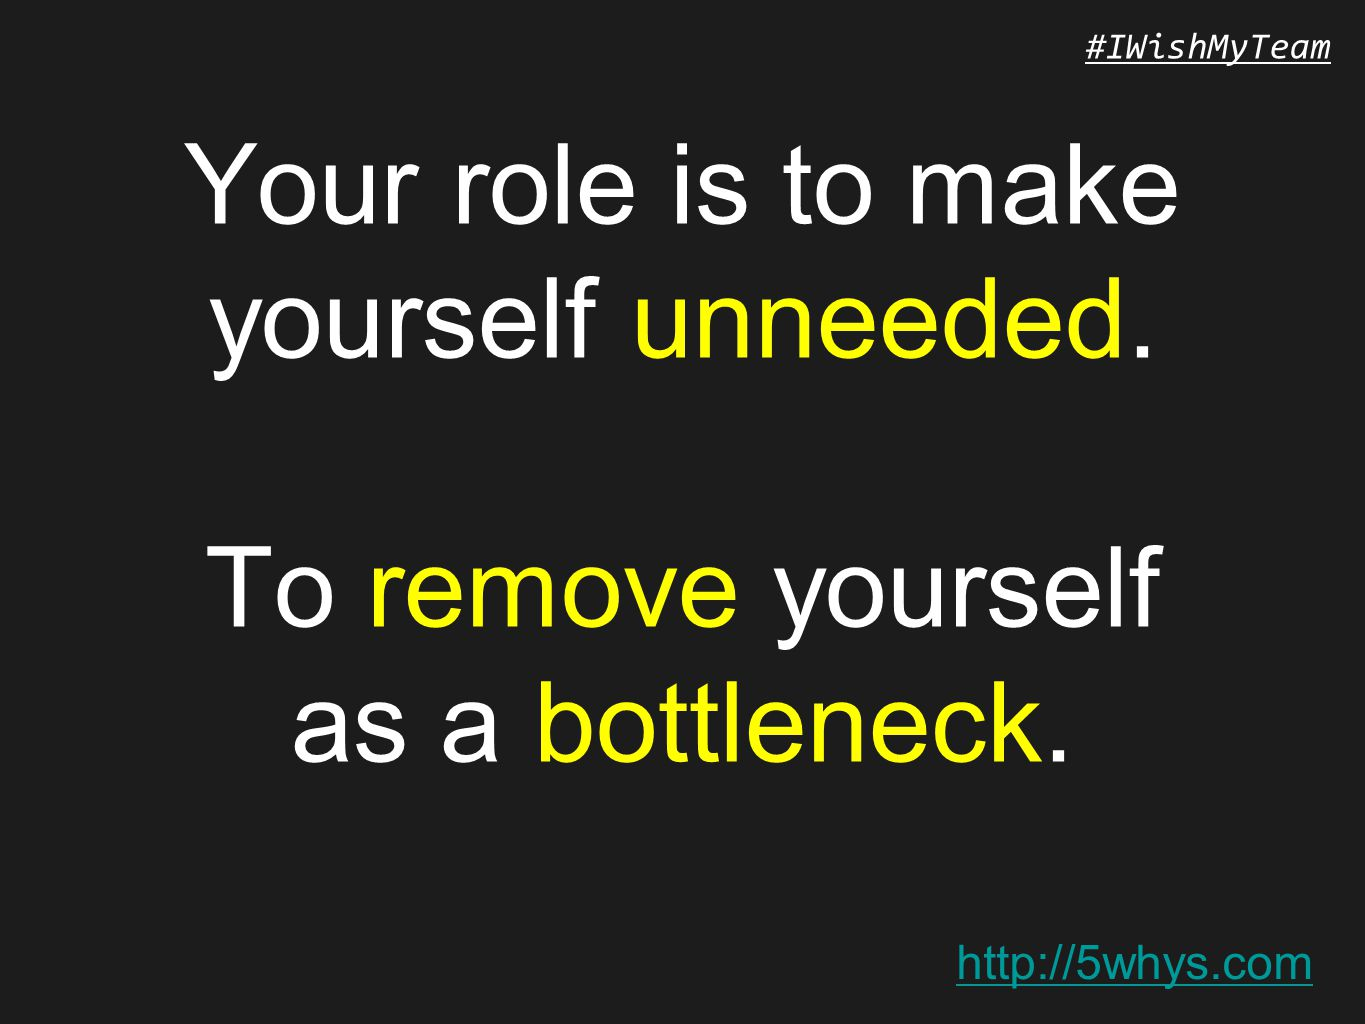 http://5whys.com #IWishMyTeam Your role is to make yourself unneeded. To remove yourself as a bottleneck.